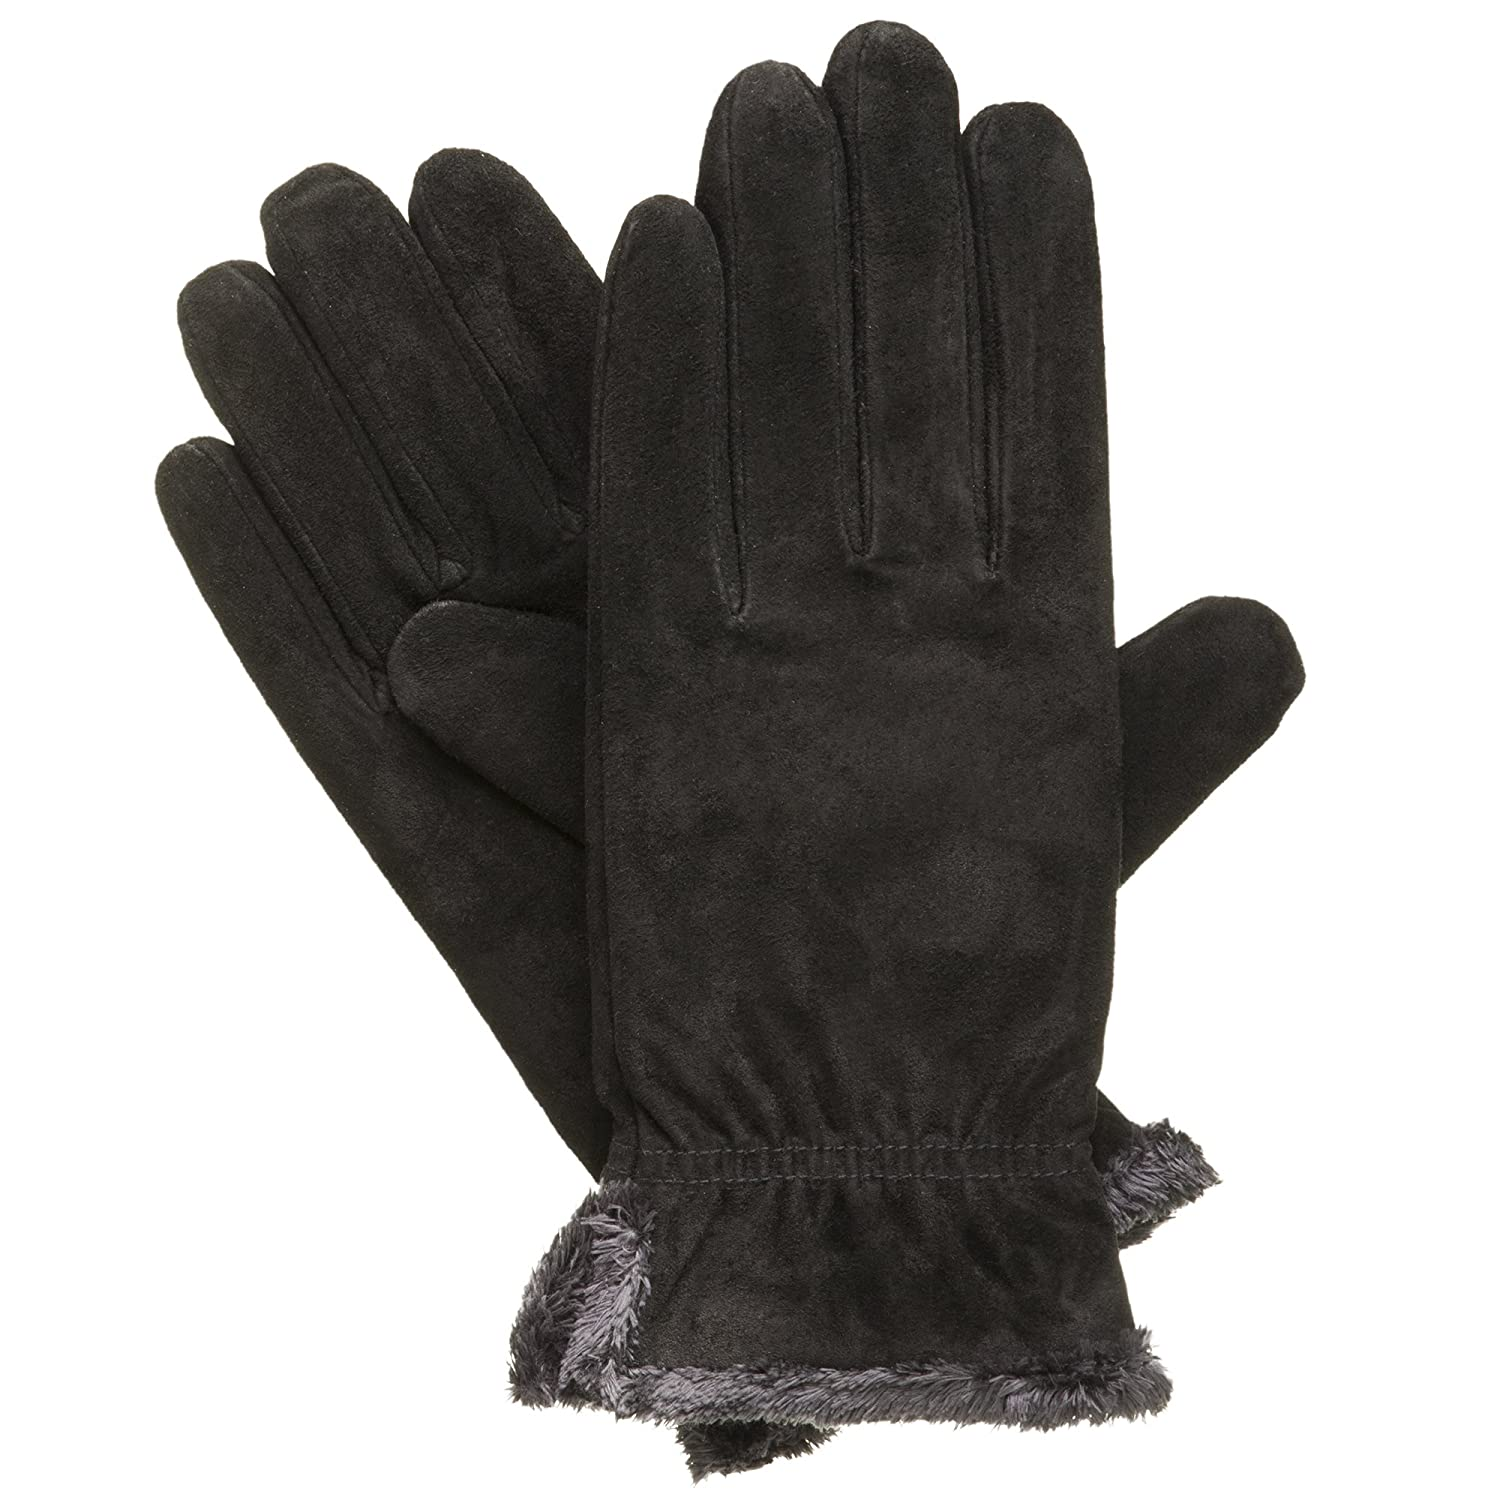 Black leather cut off gloves - Amazon Com Isotoner Women S Suede Gloves With Gathered Wrist Black Medium Clothing